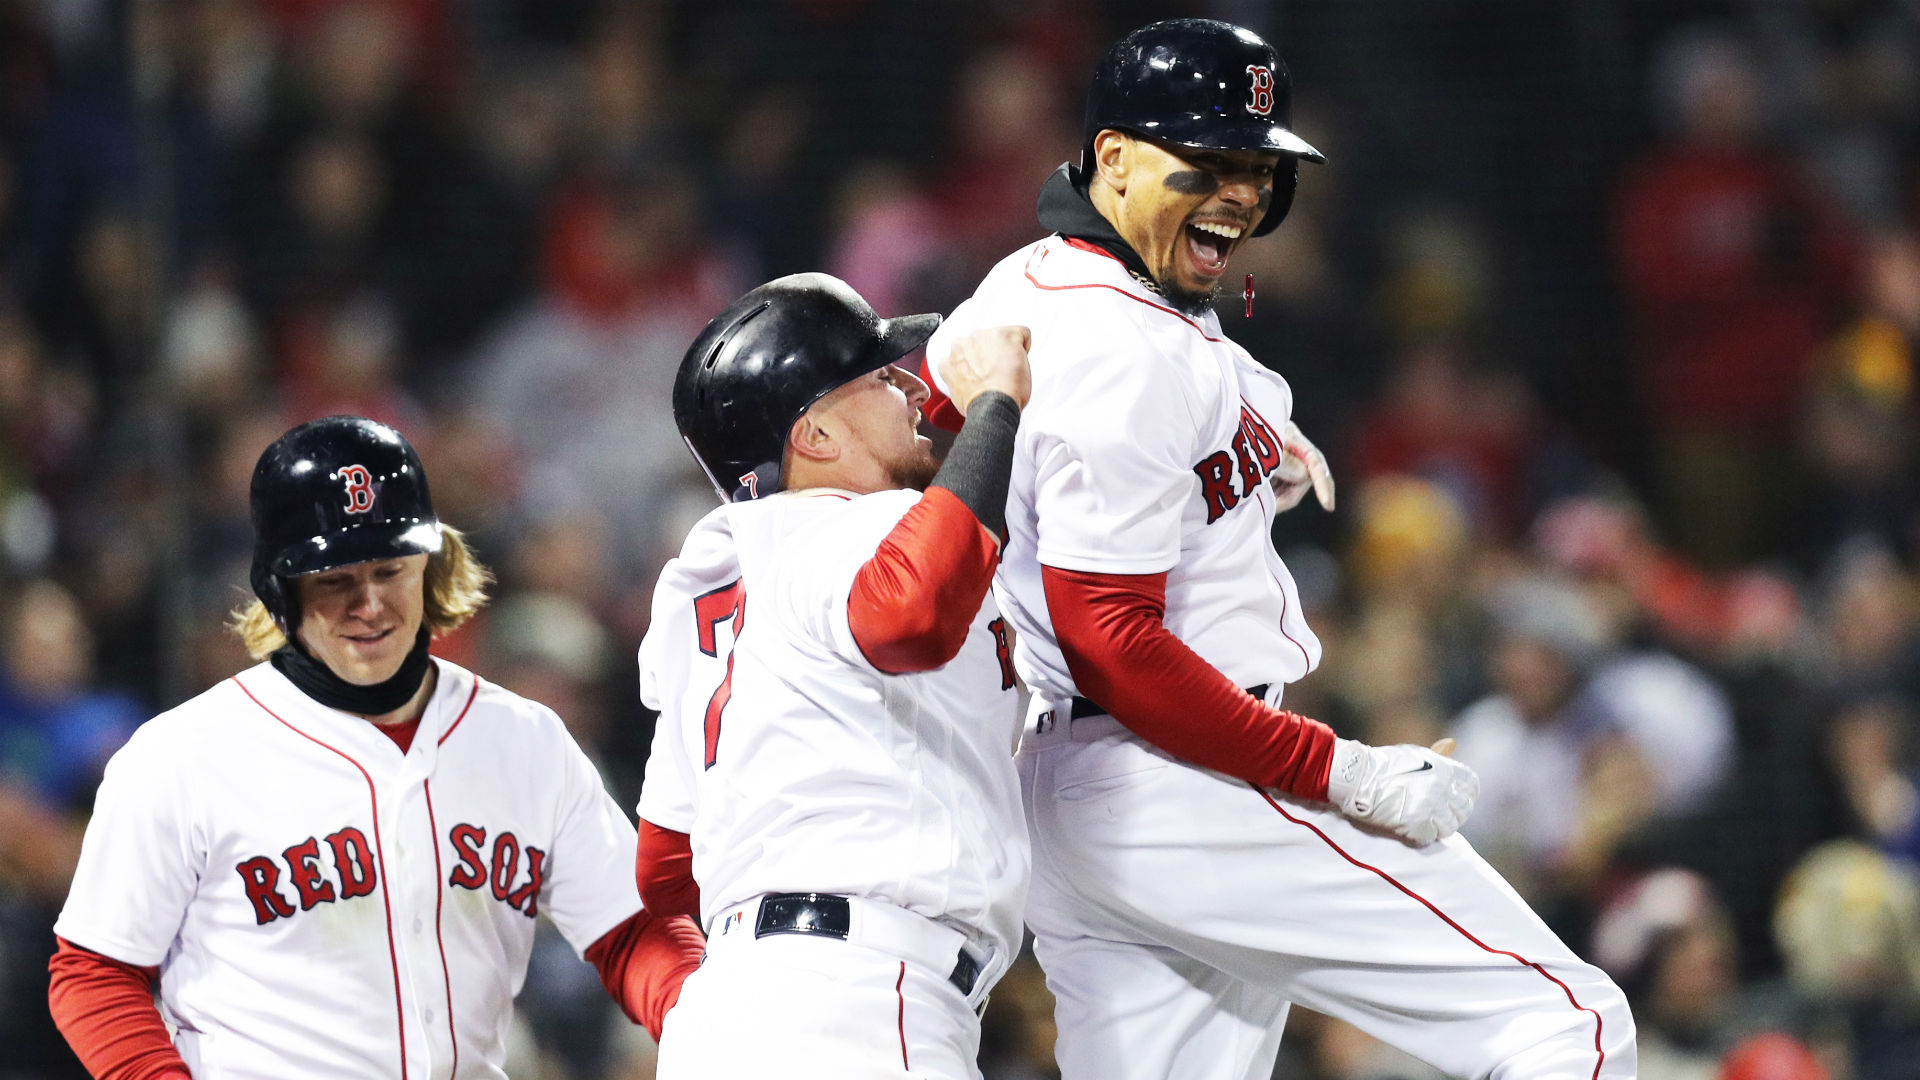 MLB wrap: Red Sox clinch AL East with win over Yankees